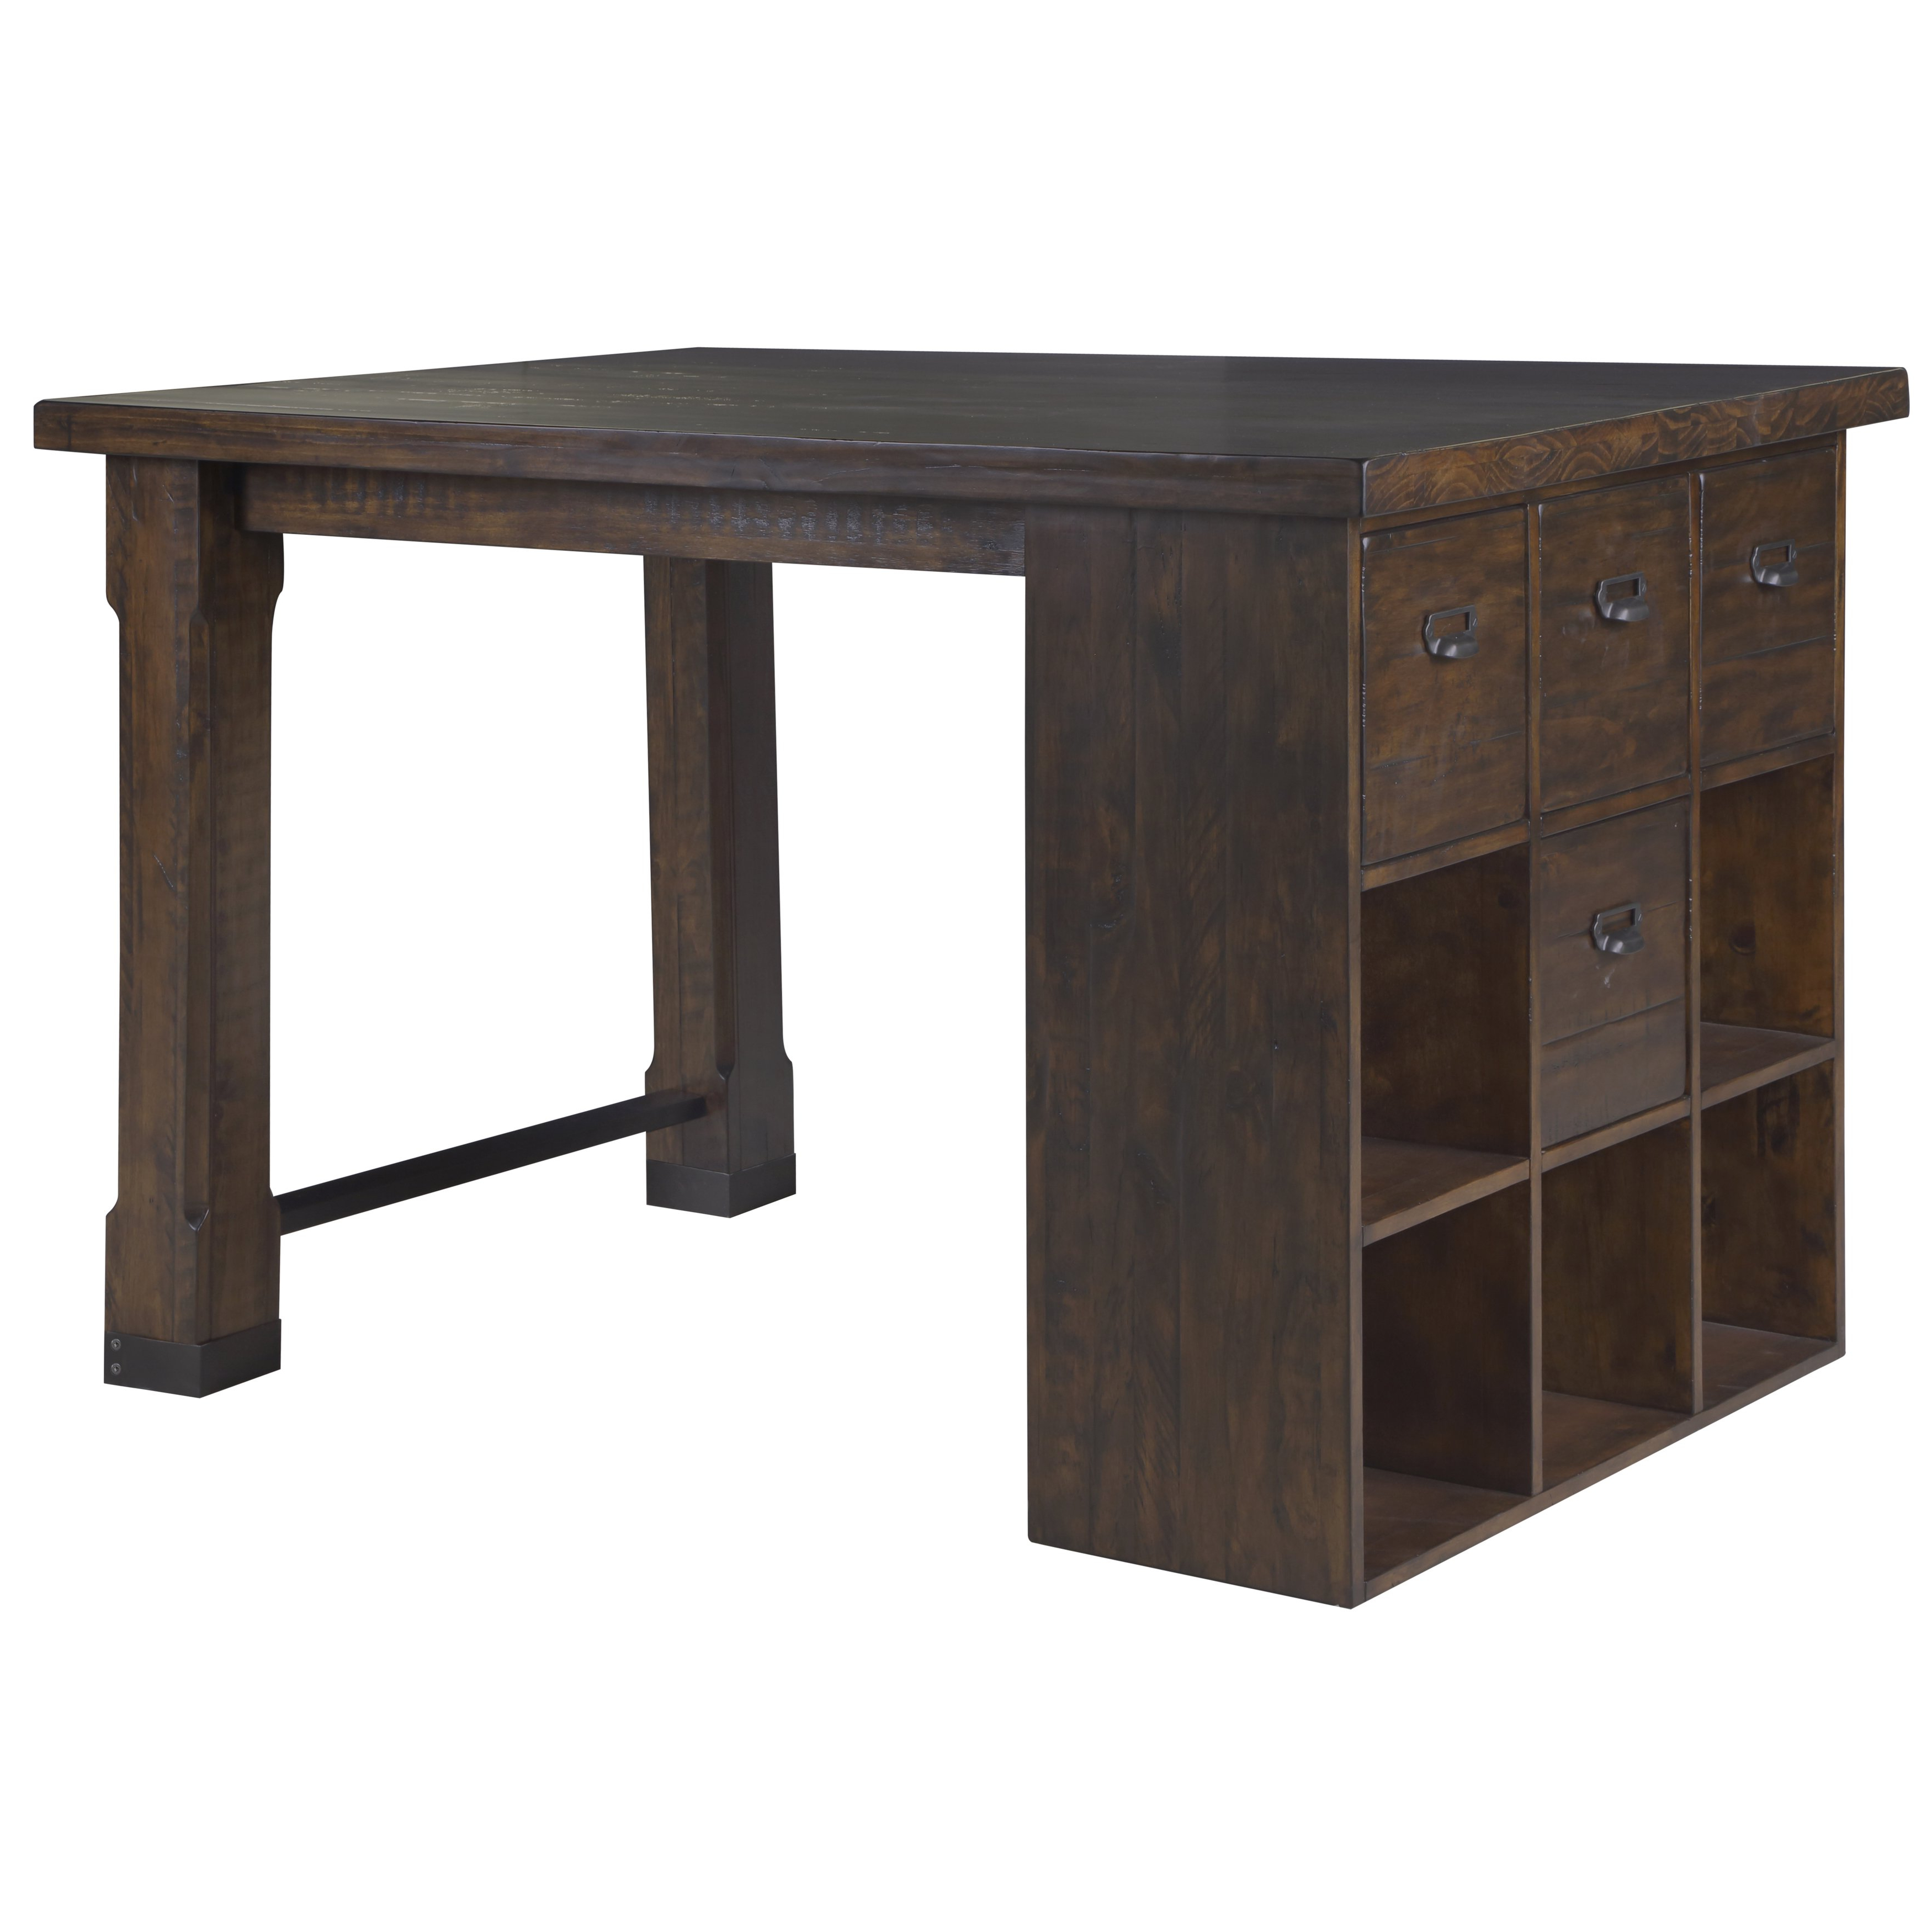 Shop Silver Orchid Bowers Asymmetrical Counter Height Desk With Cube For Preferred Bale Rustic Grey Round Cocktail Tables With Storage (View 14 of 20)